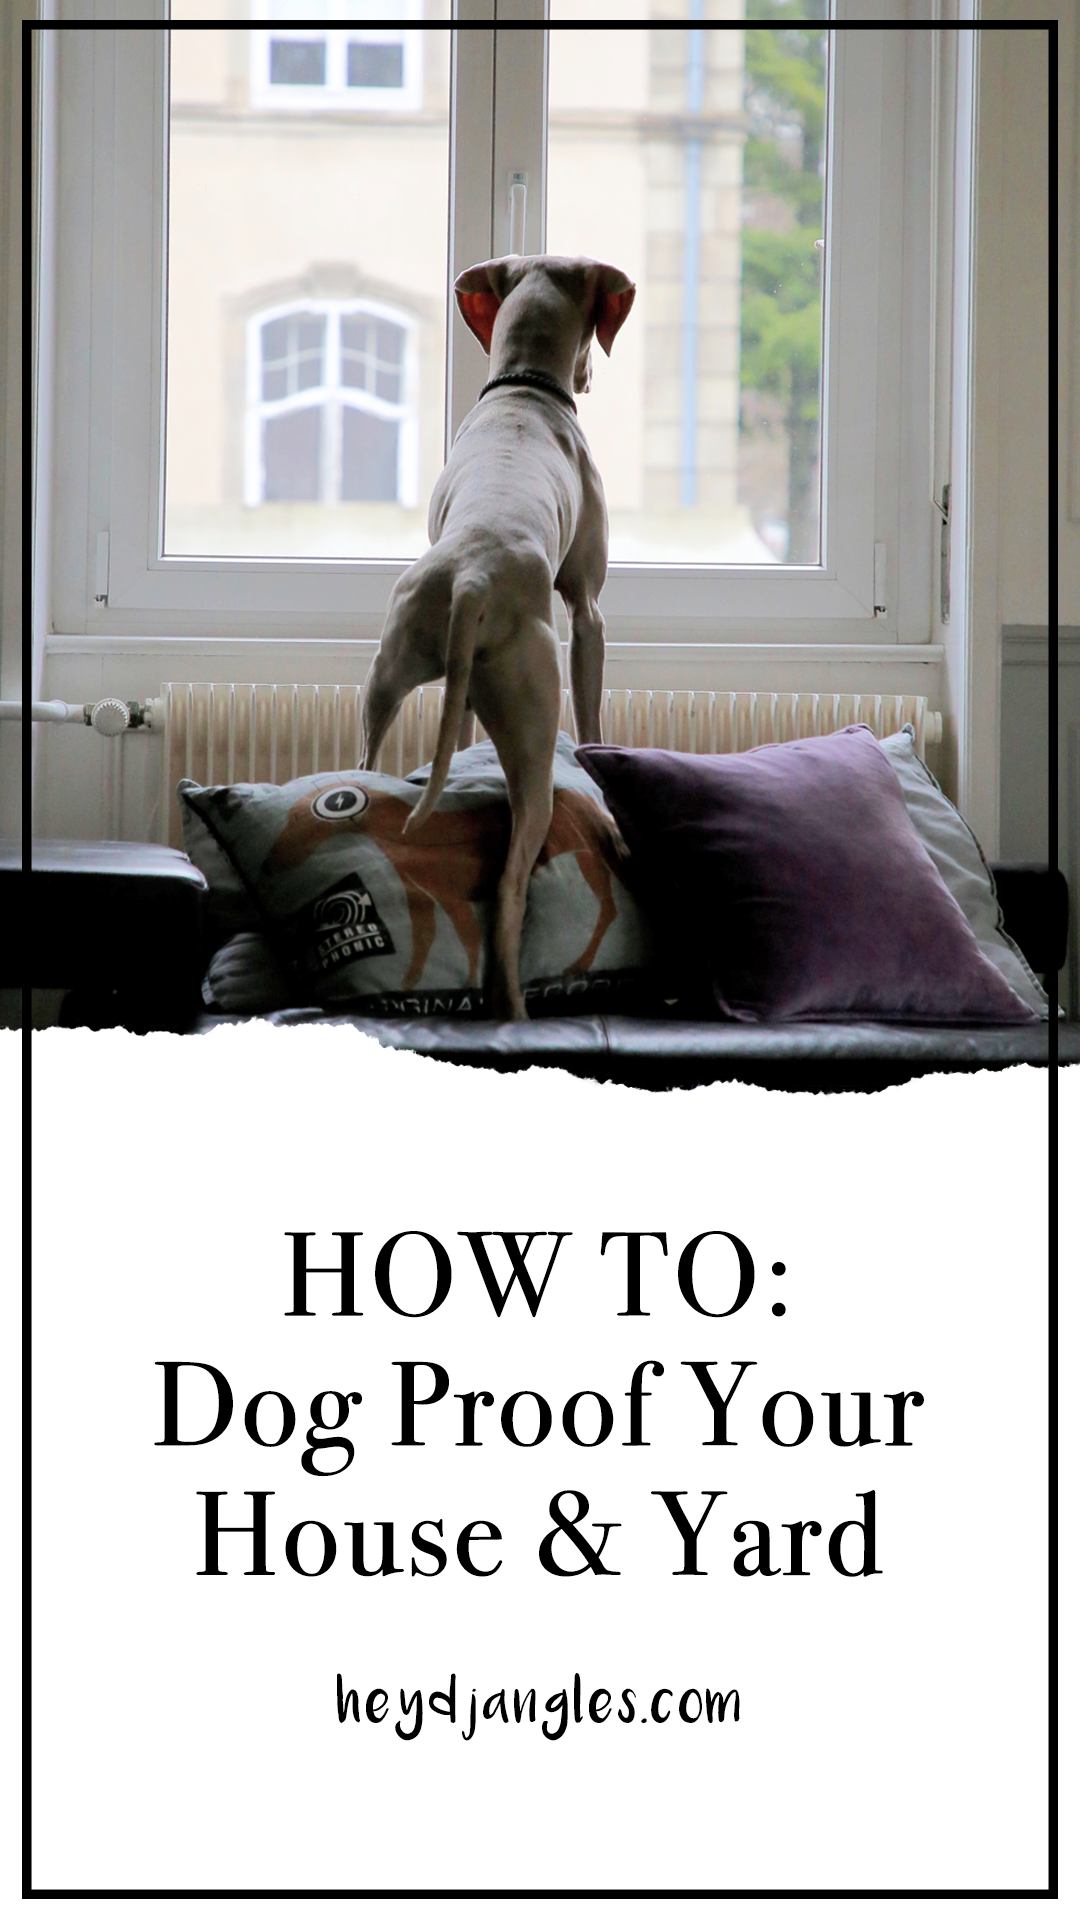 Dog Proofing Your House – A Handy 'How-to' Guide – Hey, Djangles. Puppy proofing checklist, how to dog proof your home. #doglover #puppyproofing